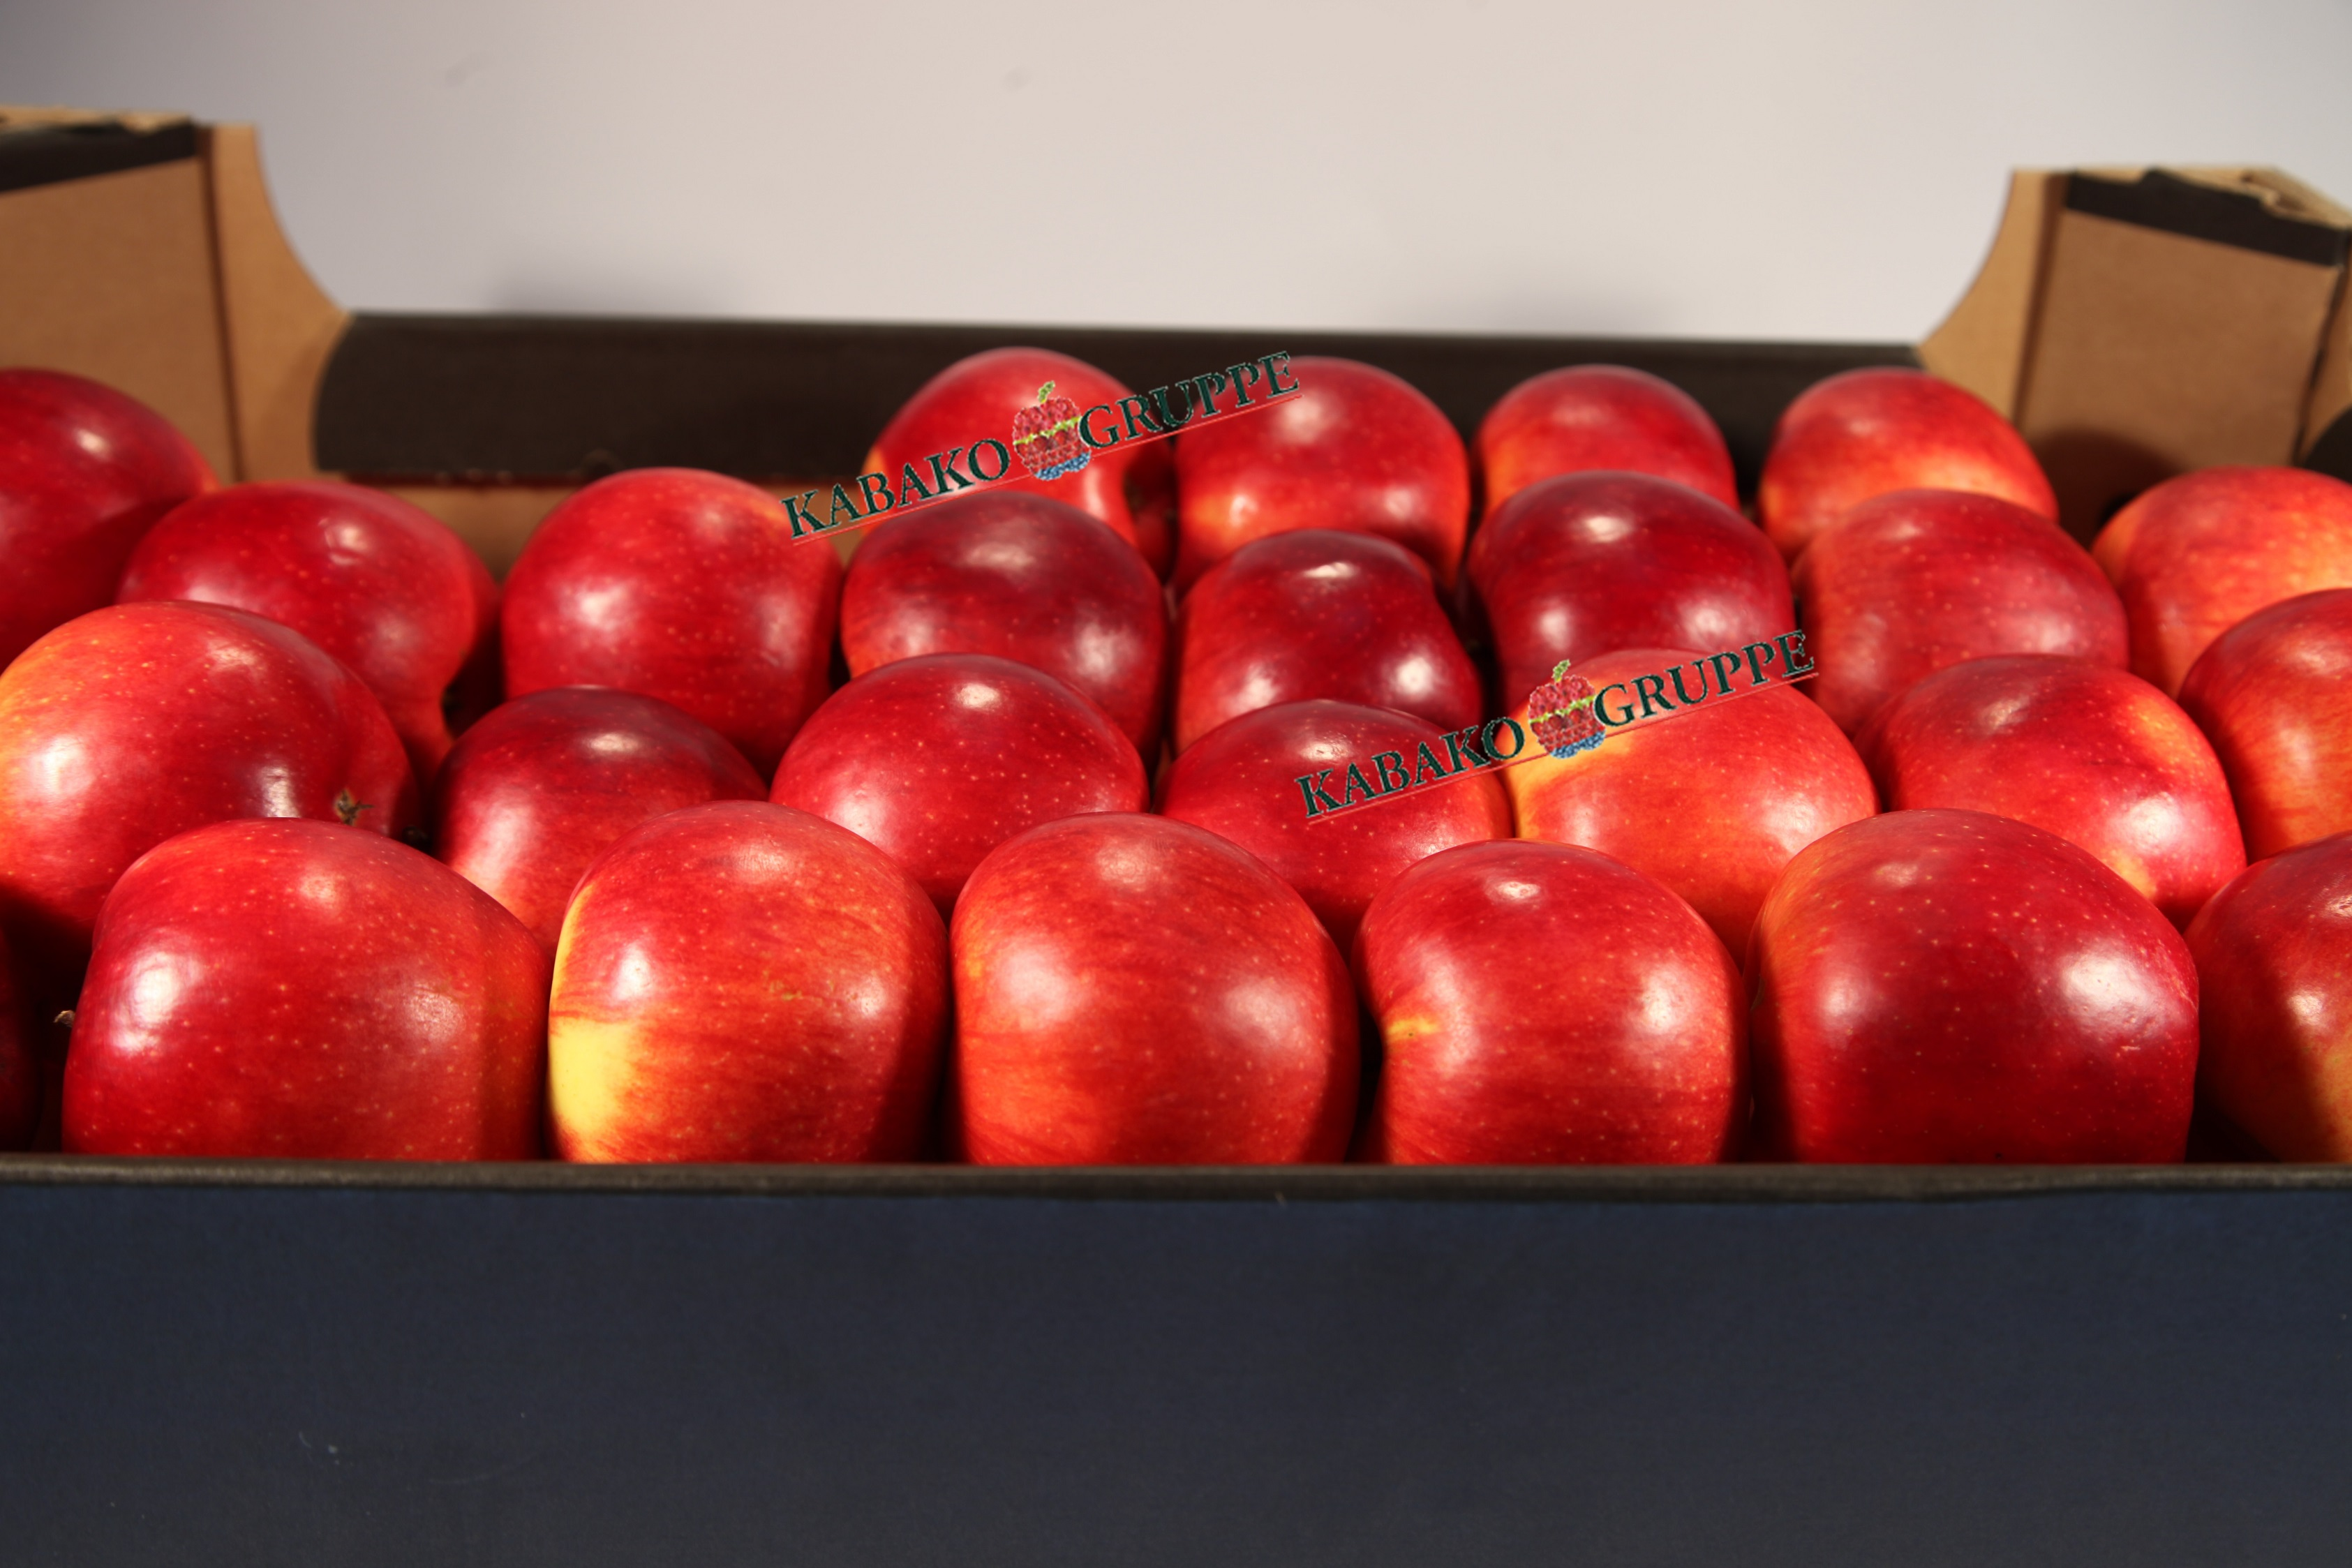 Frozen (IQF) Apples 49